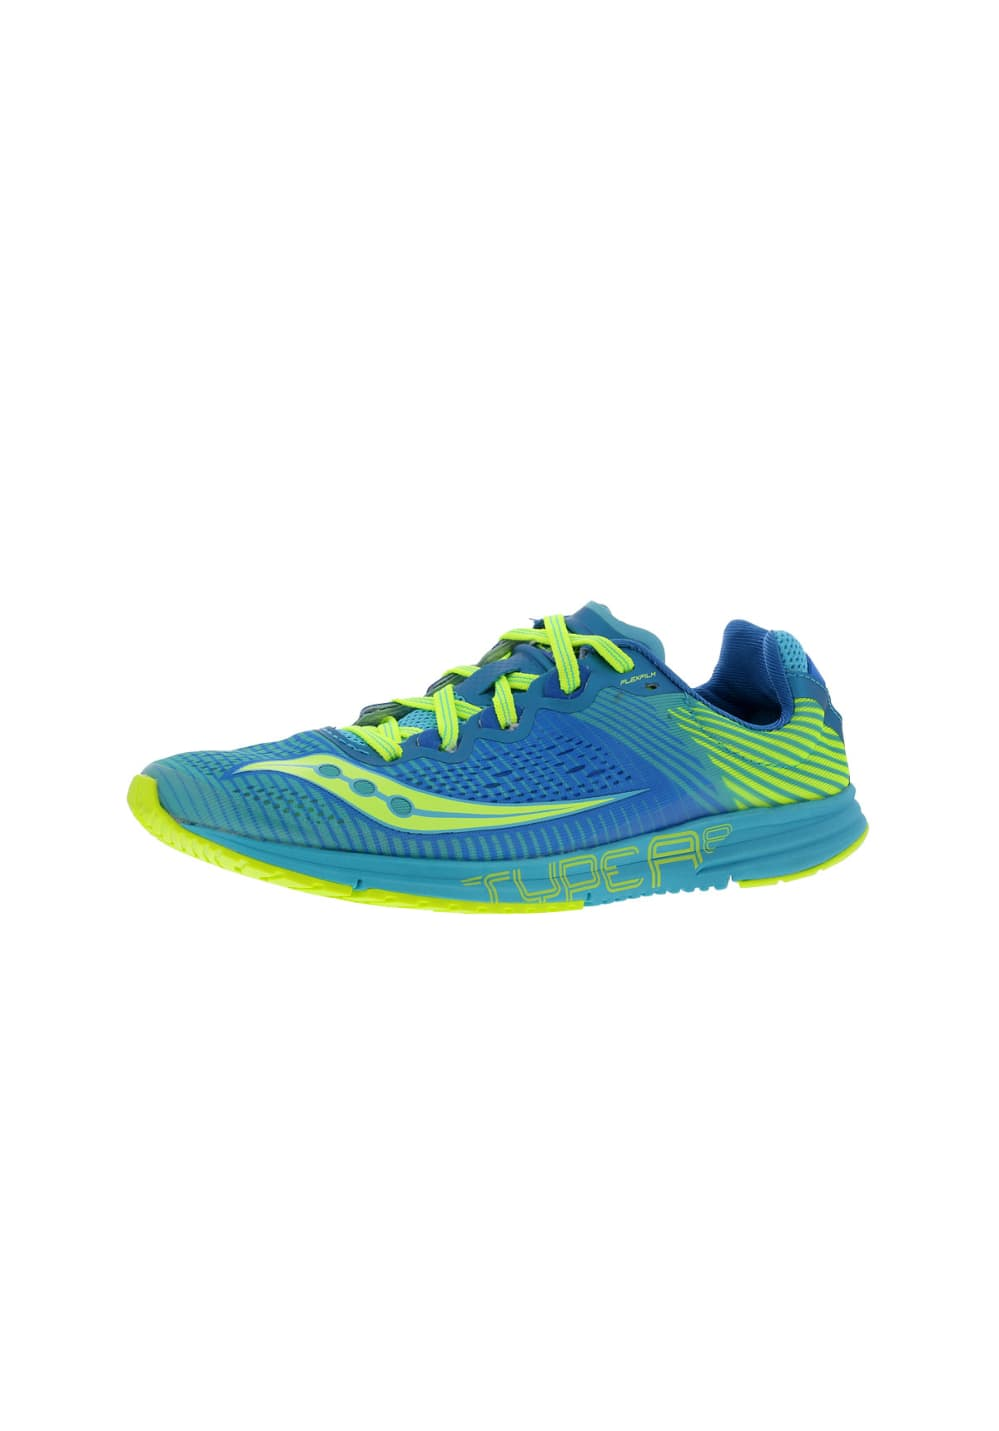 new arrivals a13aa 3cbcb Saucony Type A8 - Running shoes for Women - Blue